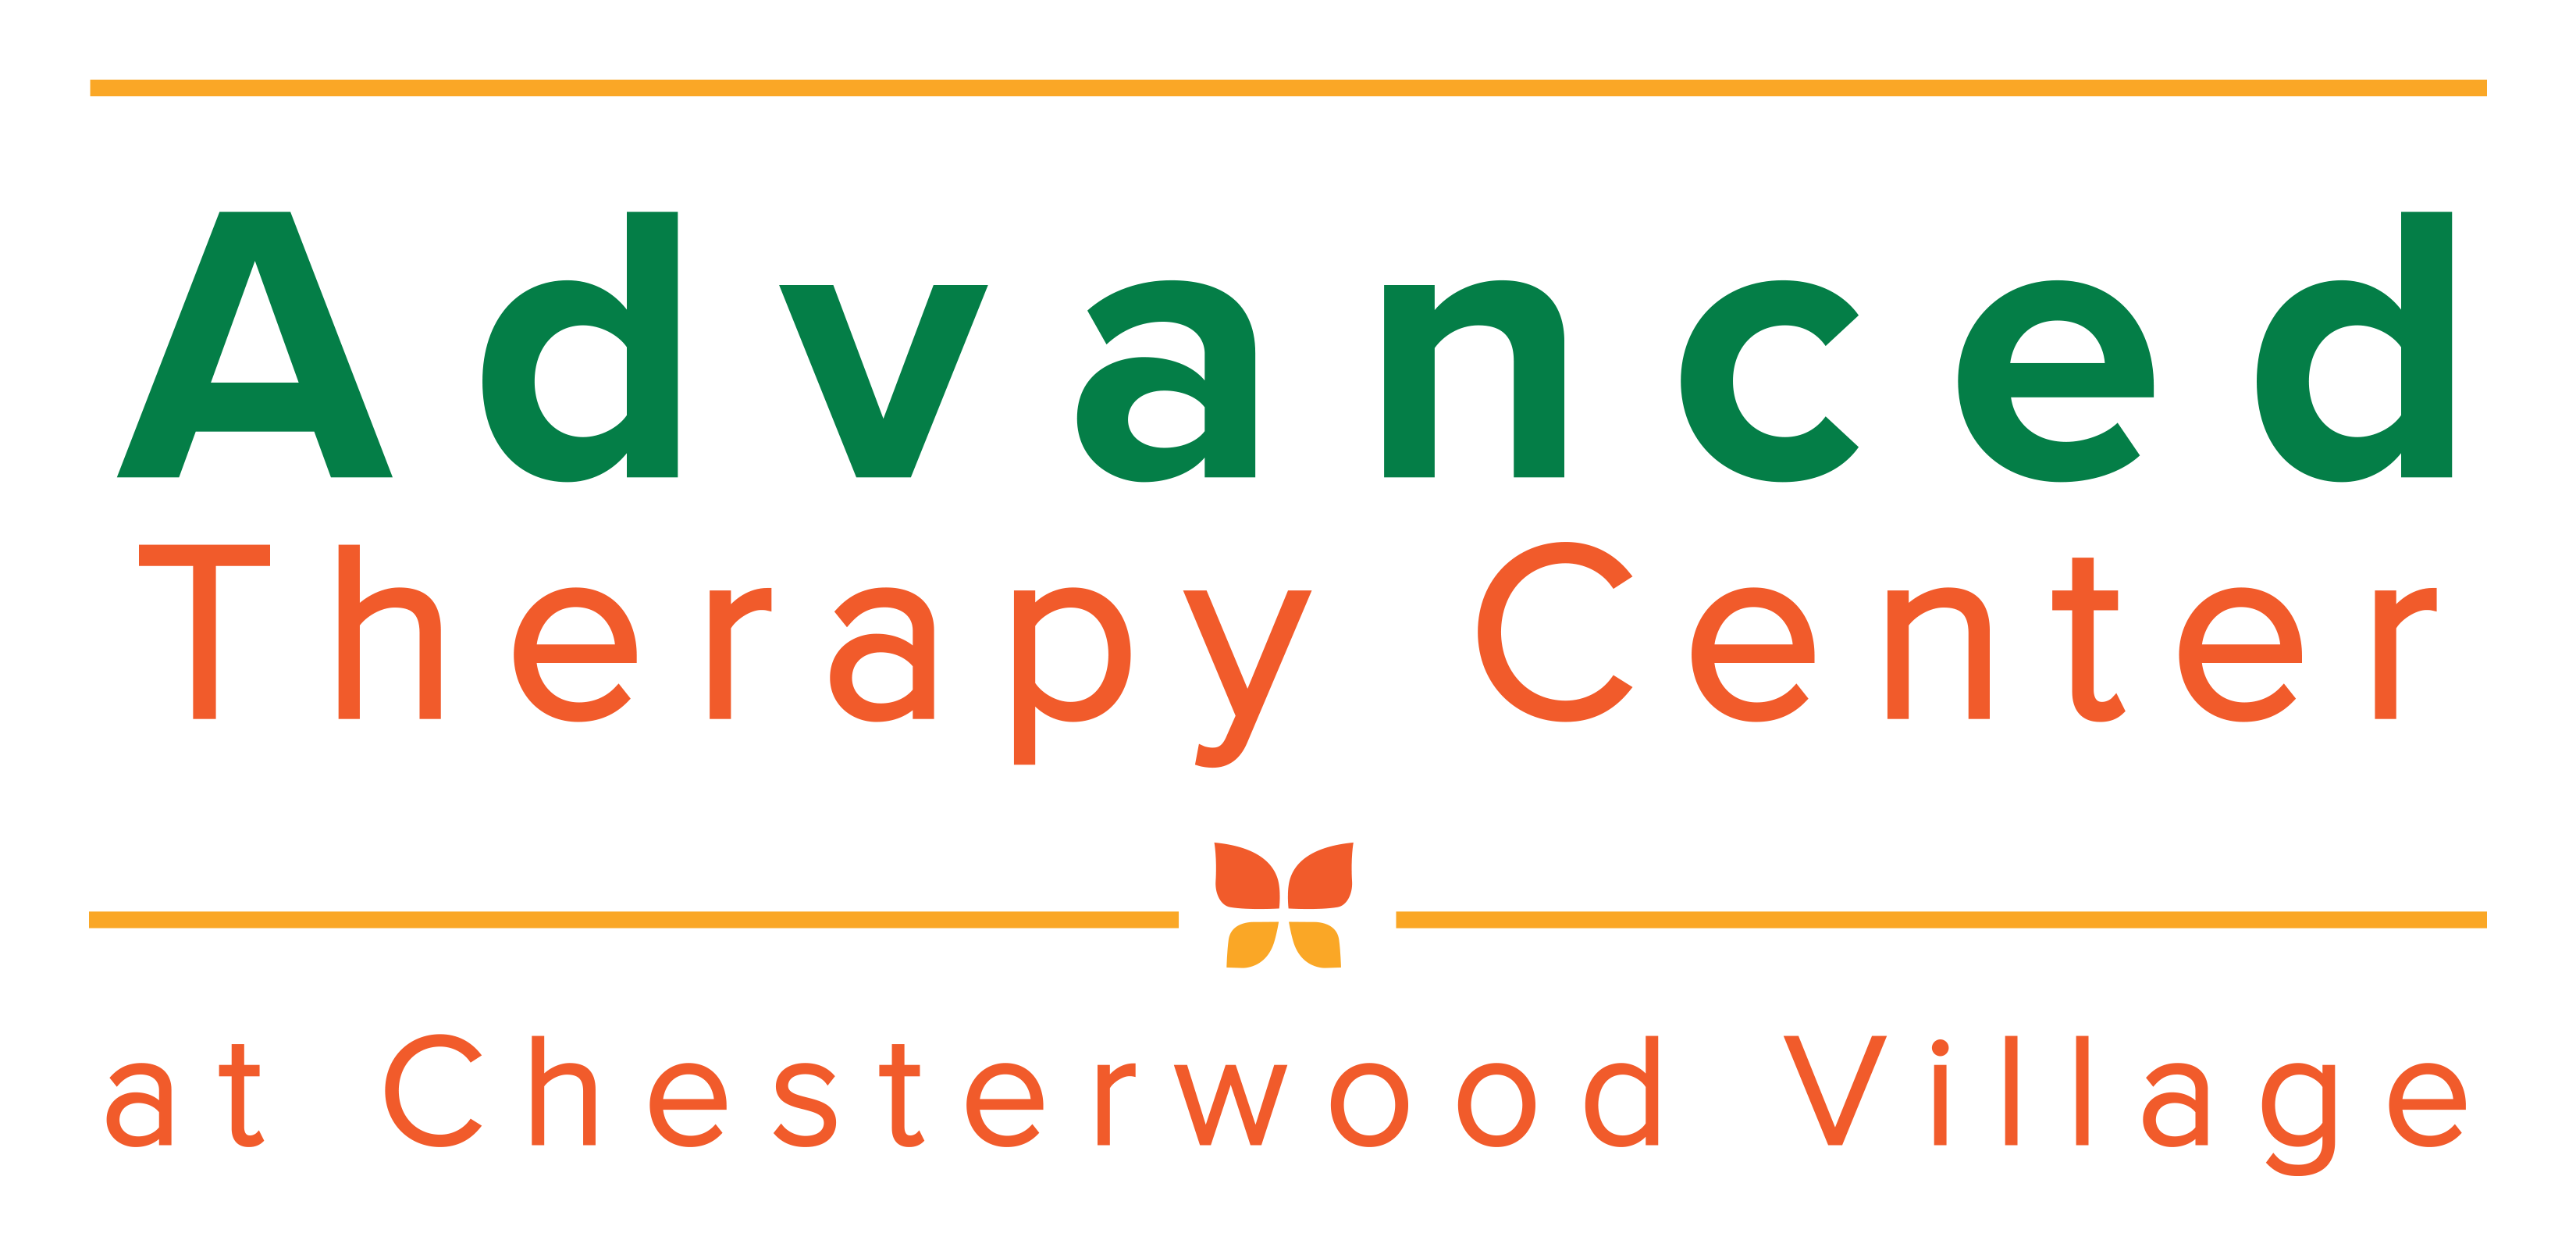 Advanced Therapy Center at Chesterwood Village